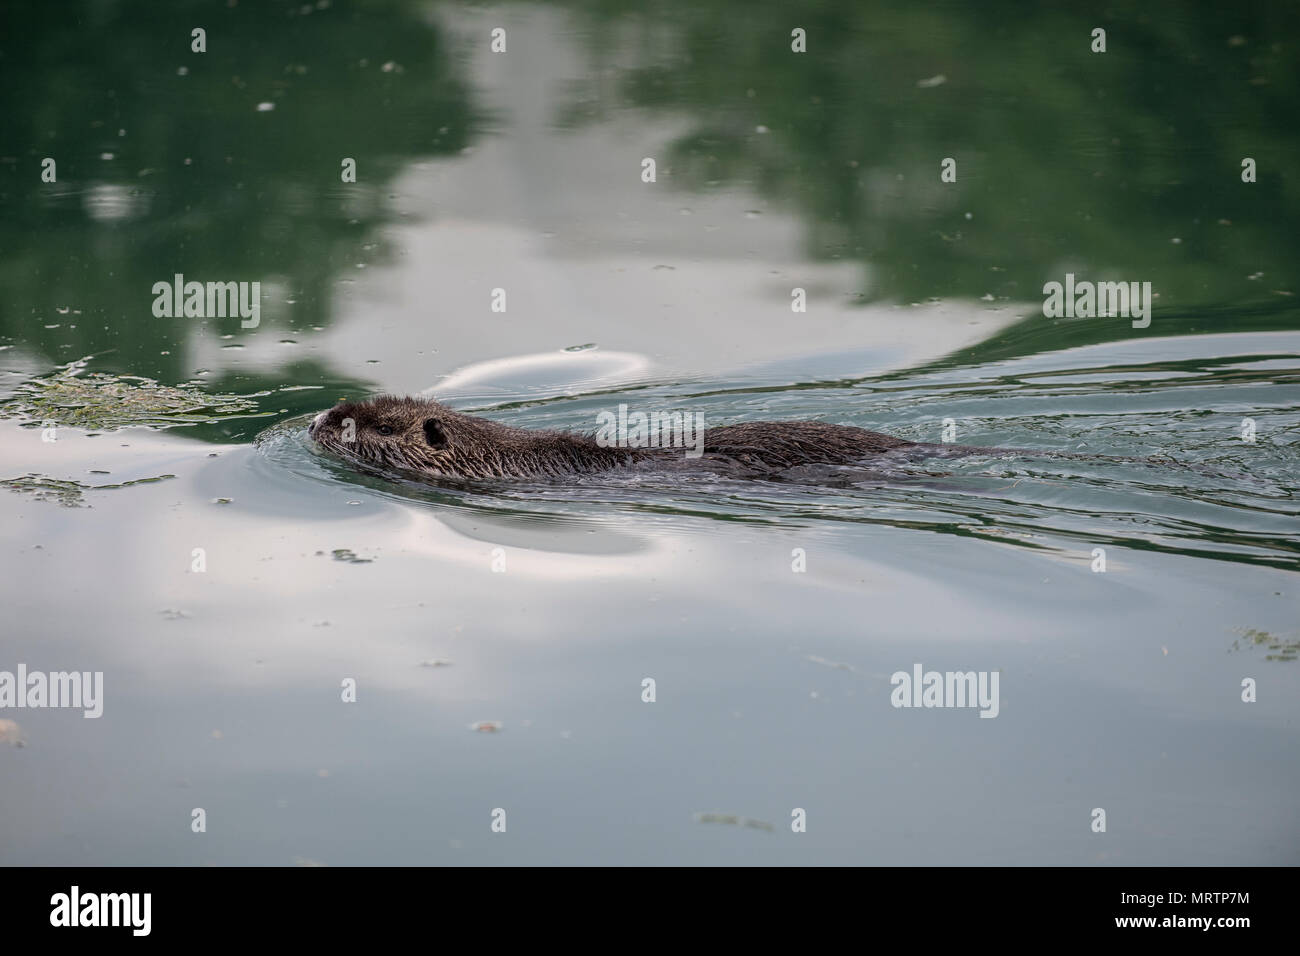 A coypu, also known as the nutria, is a large, herbivorous, semiaquatic rodent. Pictured in an urban canal near the coast of Slovenia. - Stock Image